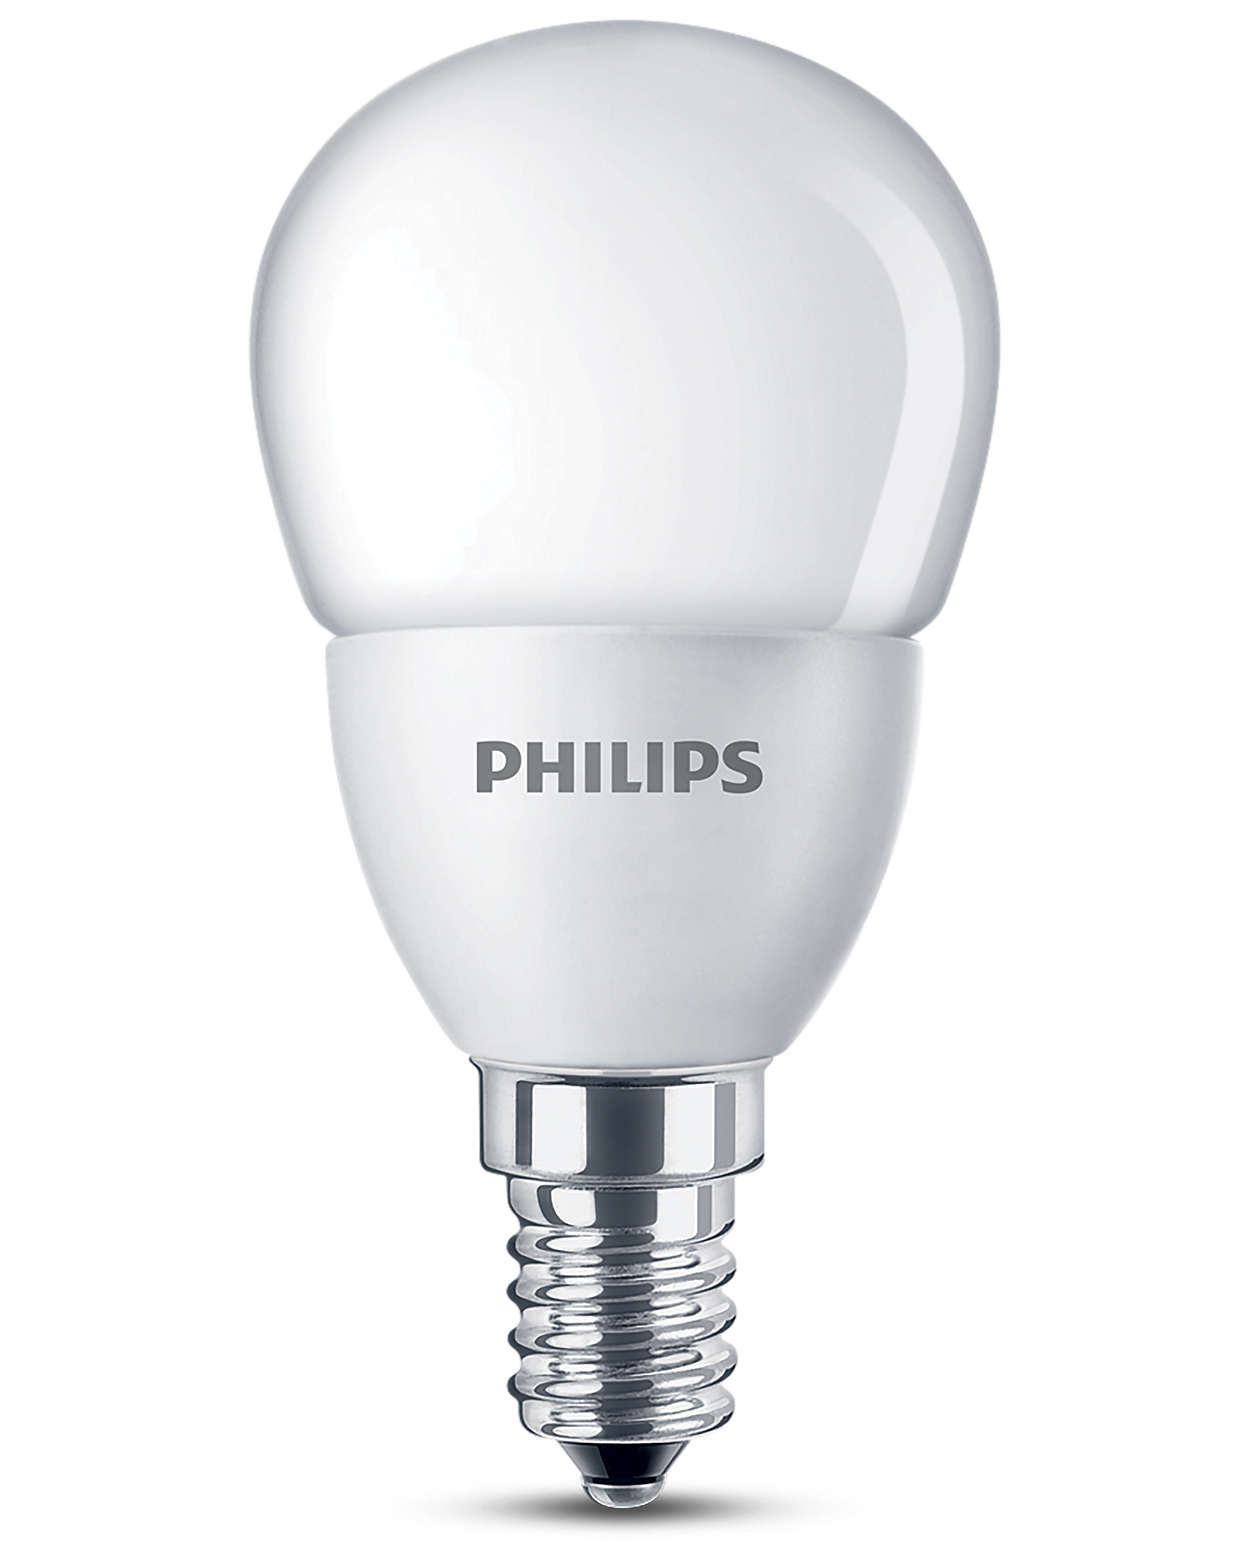 Extrem LED Tropfenform 8718291195627 | Philips OD25